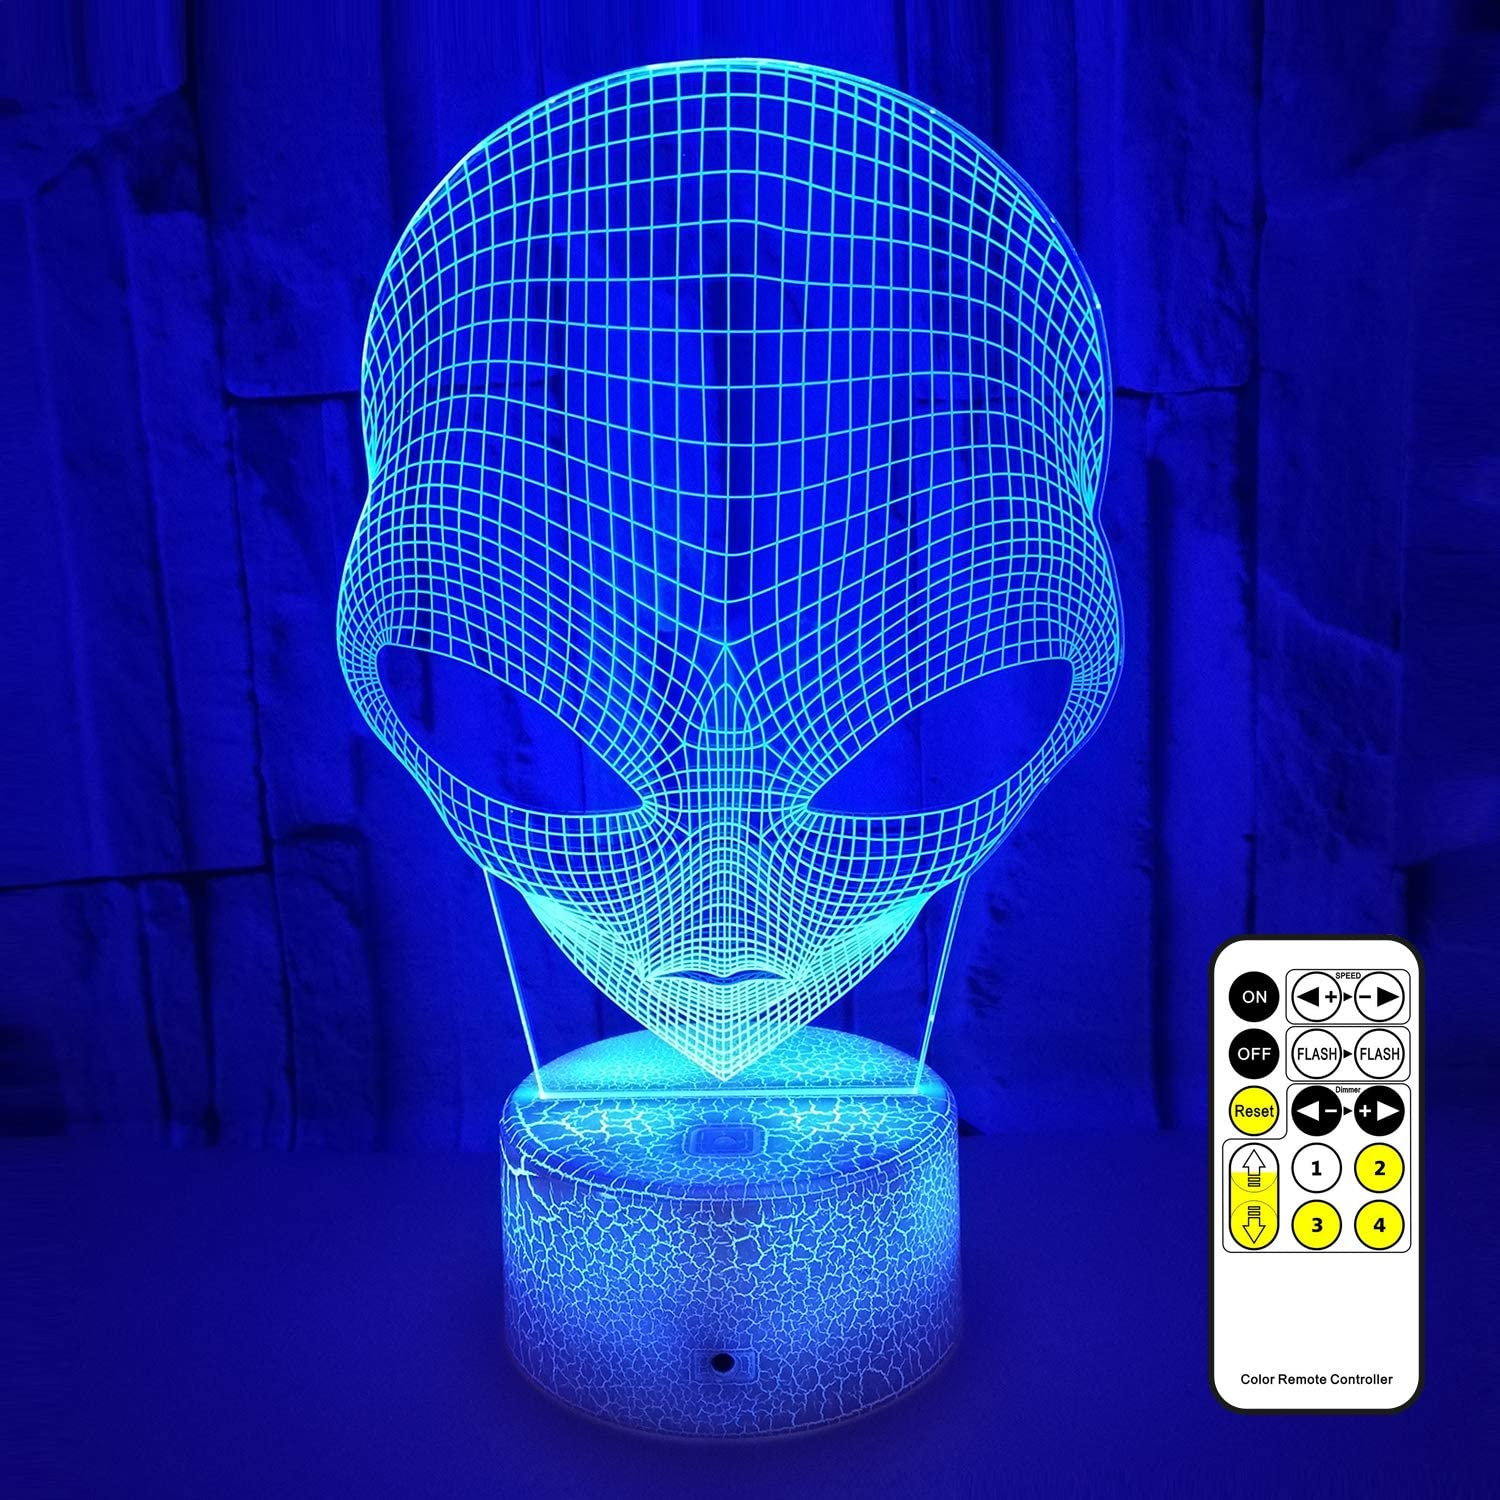 Football SUNCEN Football Lamp Night Light for Kids with Remote /& Smart Touch 7 Colors 16 Colors Changing Dimmable Toys 1 2 3 4 5 6 7 8 Year Old Boy or Kids Gifts